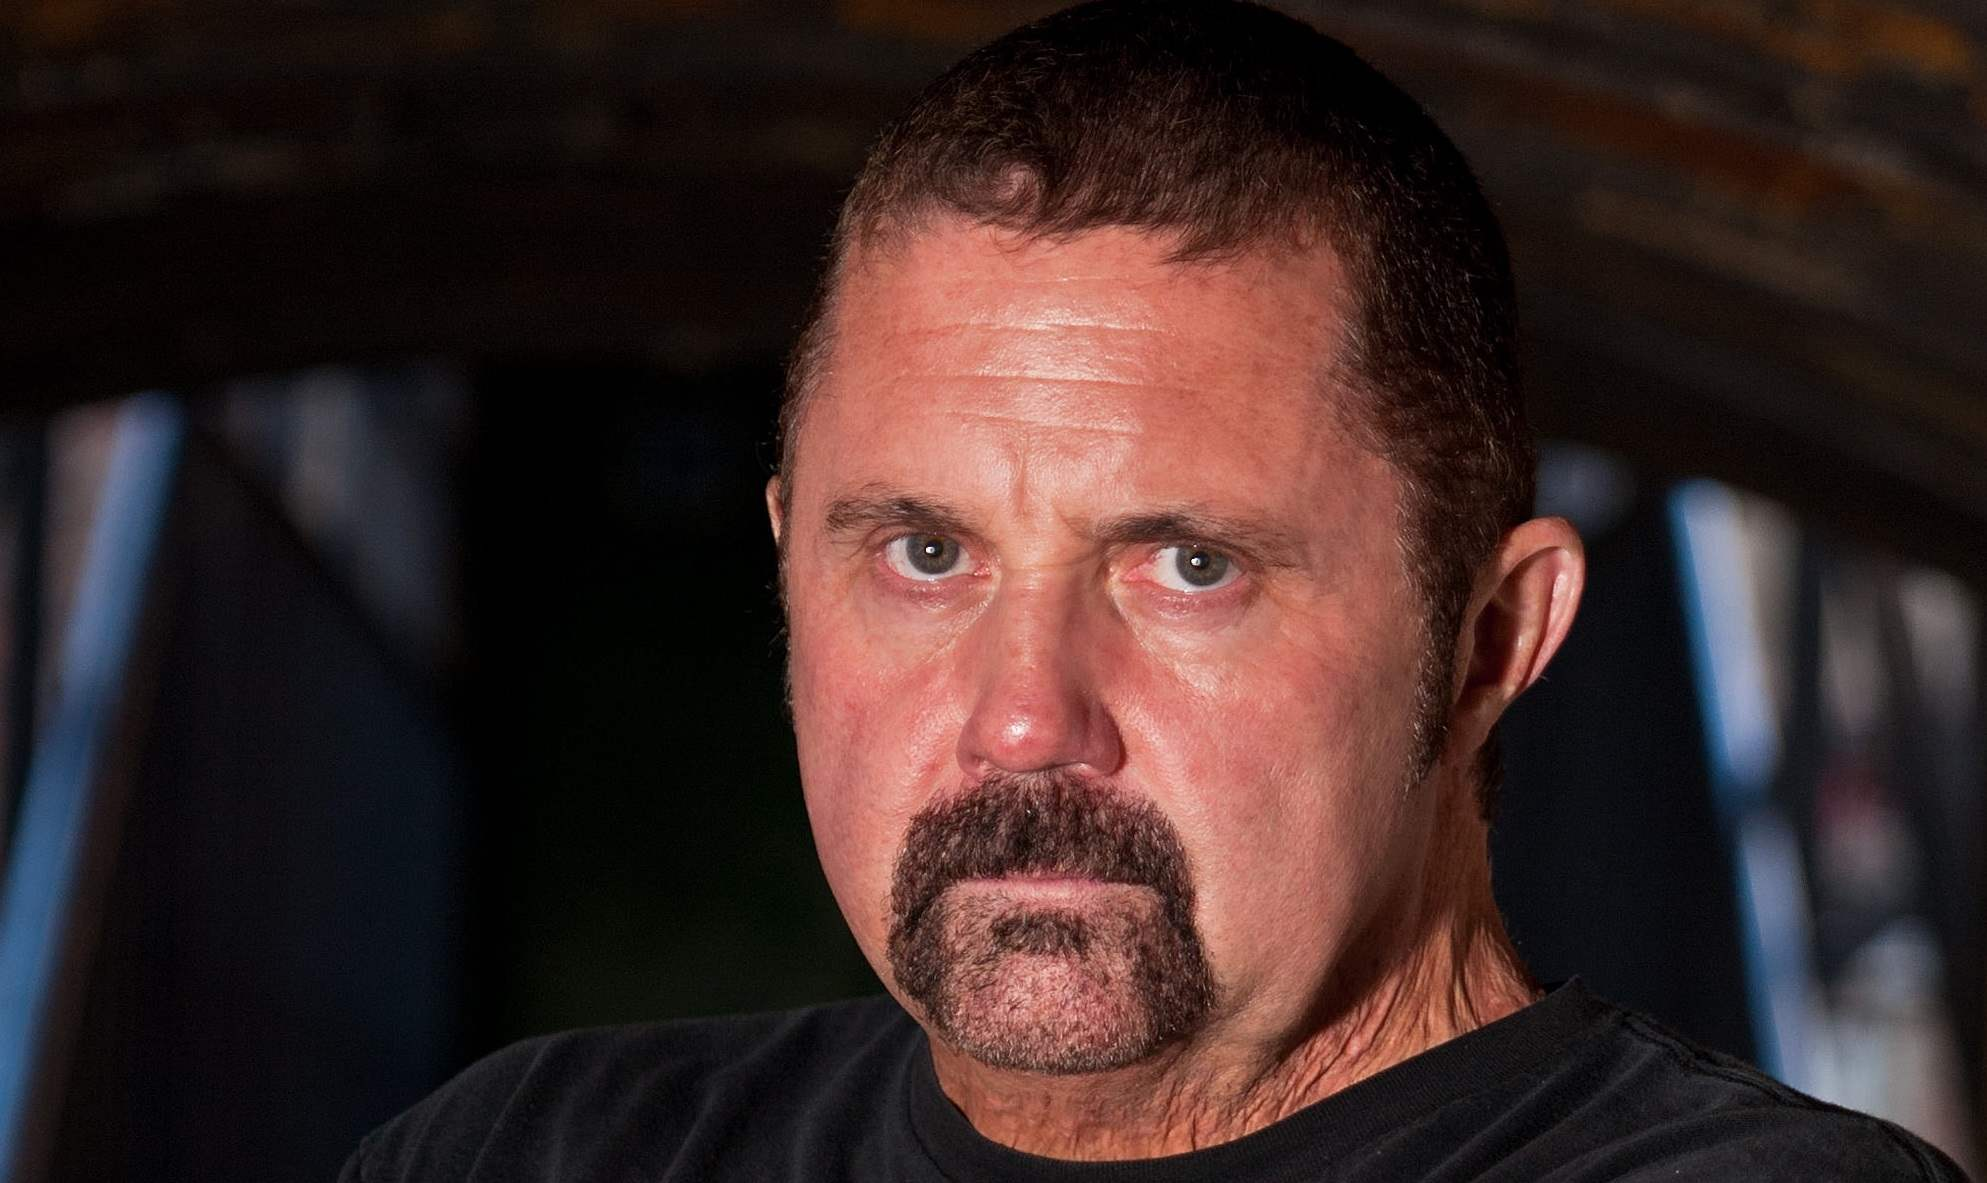 Kane Hodder at Frightfest still